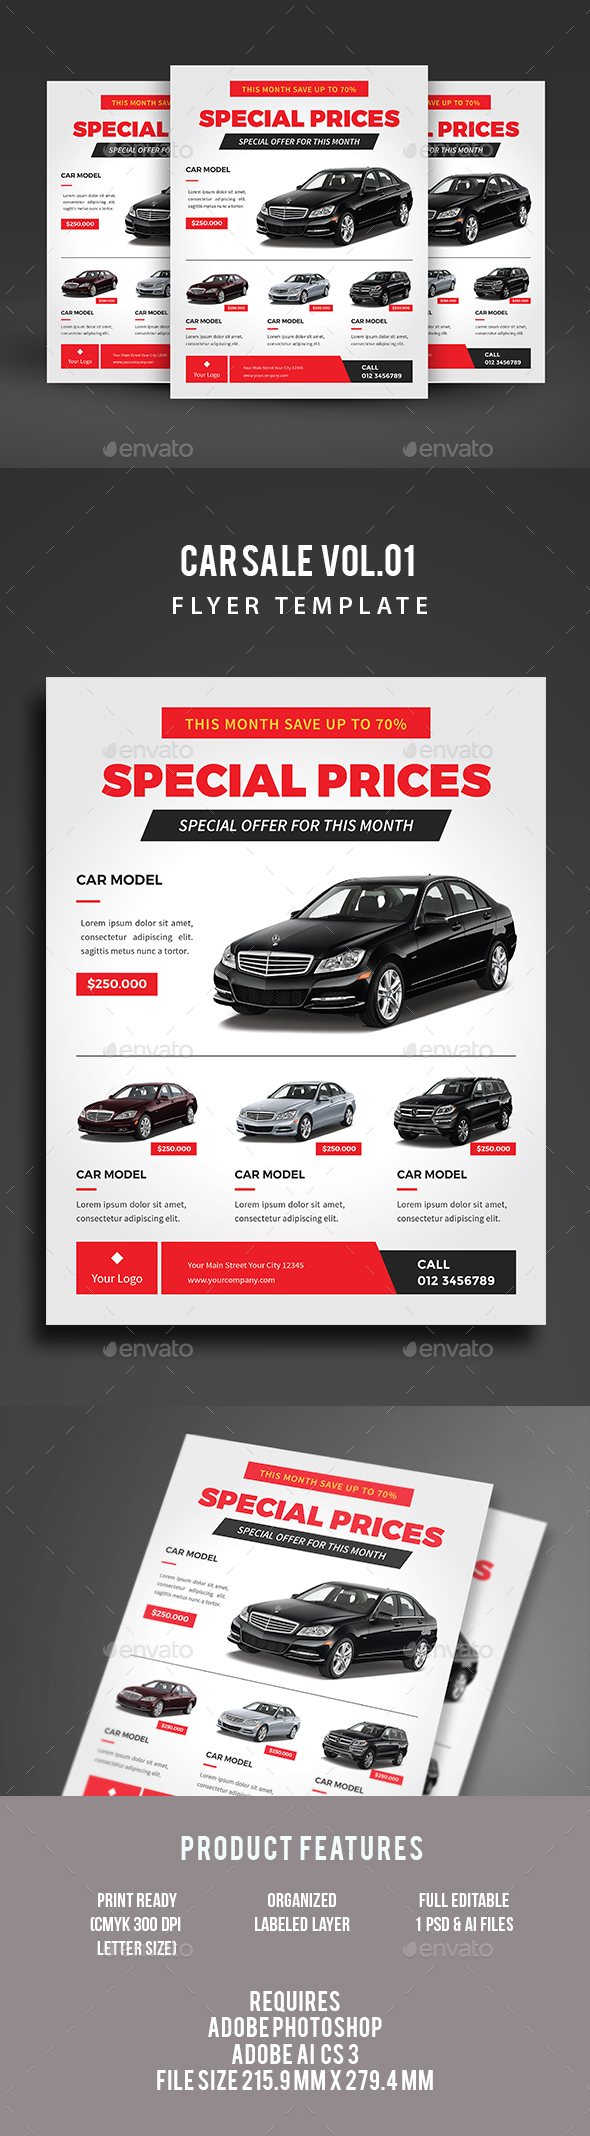 Car Flyer Graphics Designs Templates from GraphicRiver – Car for Sale Flyer